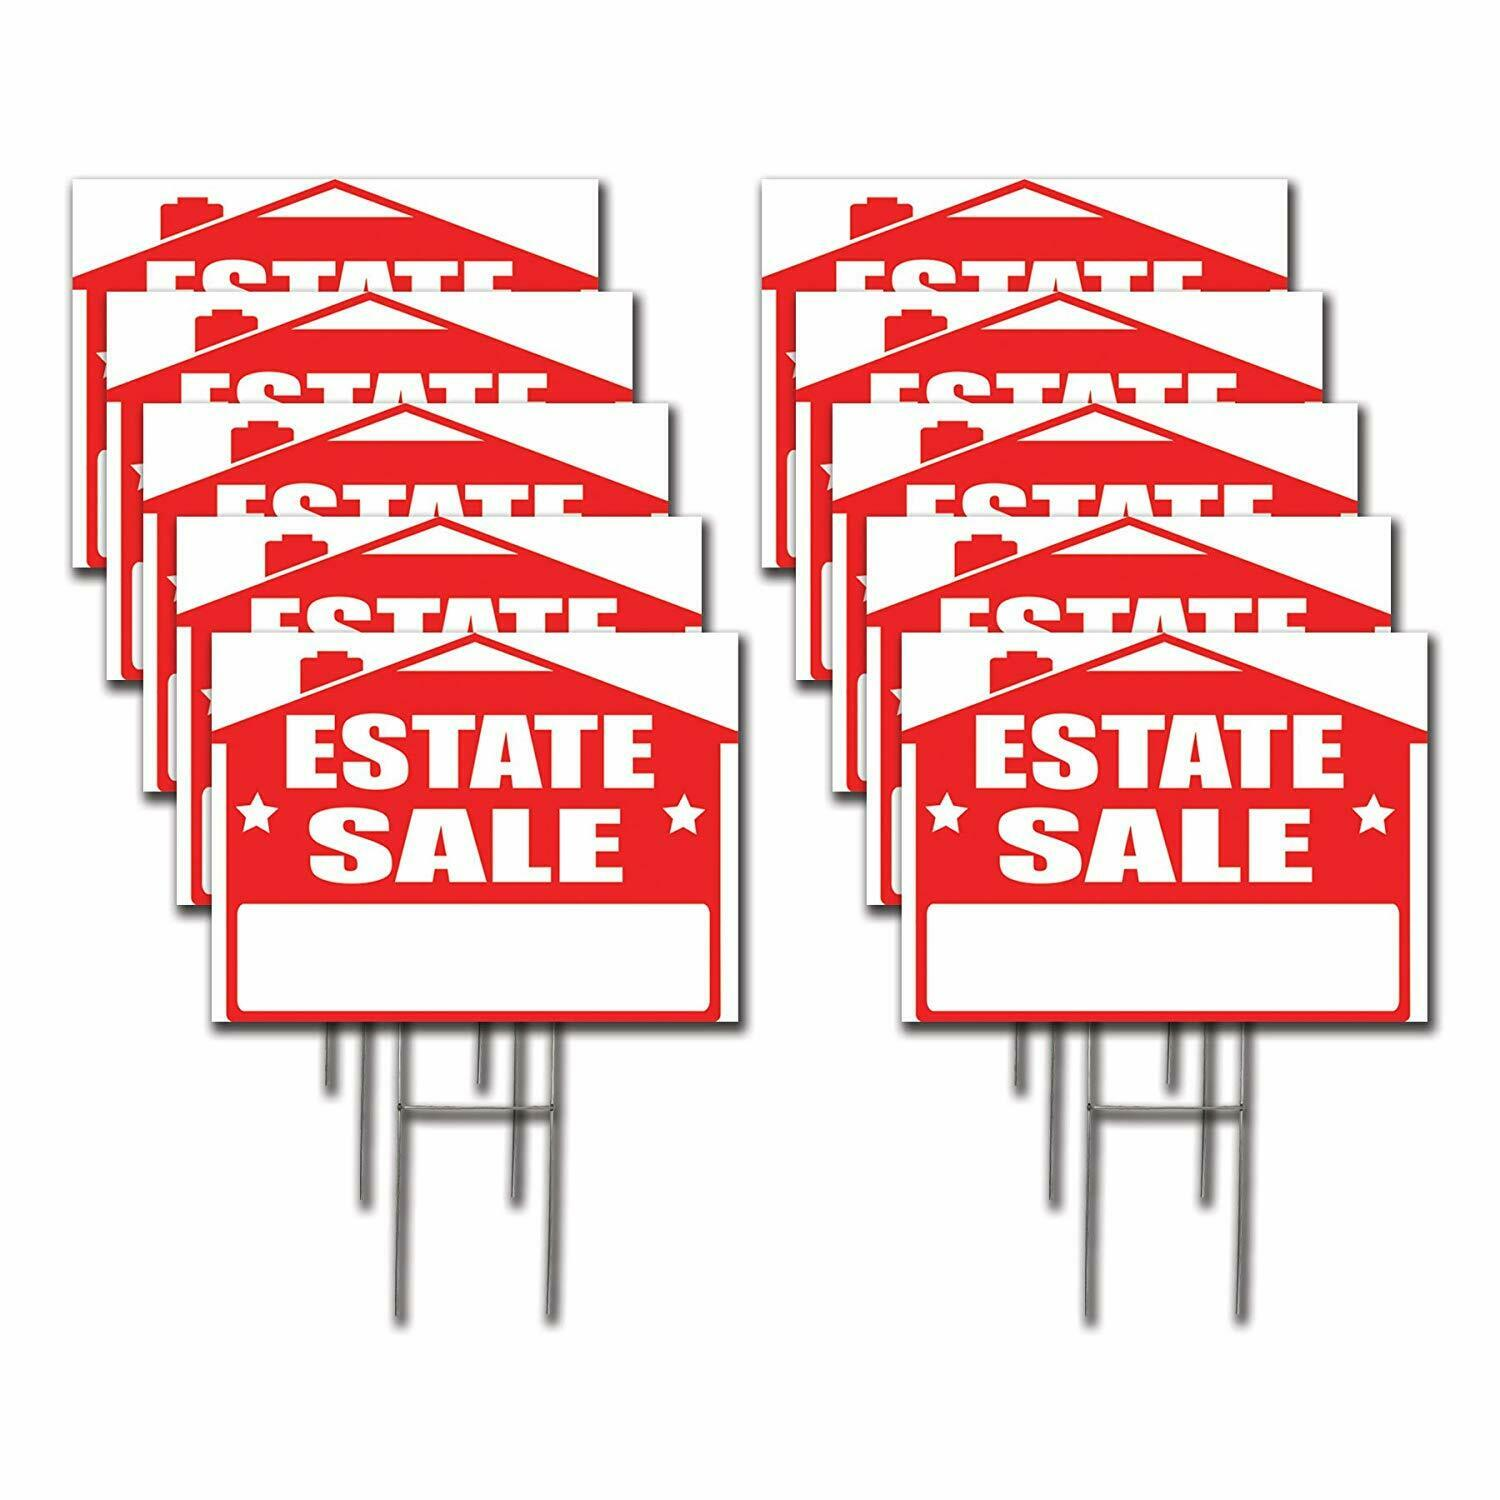 10 Pack 'ESTATE SALE' 18x24 Yard / Lawn Sign Kits